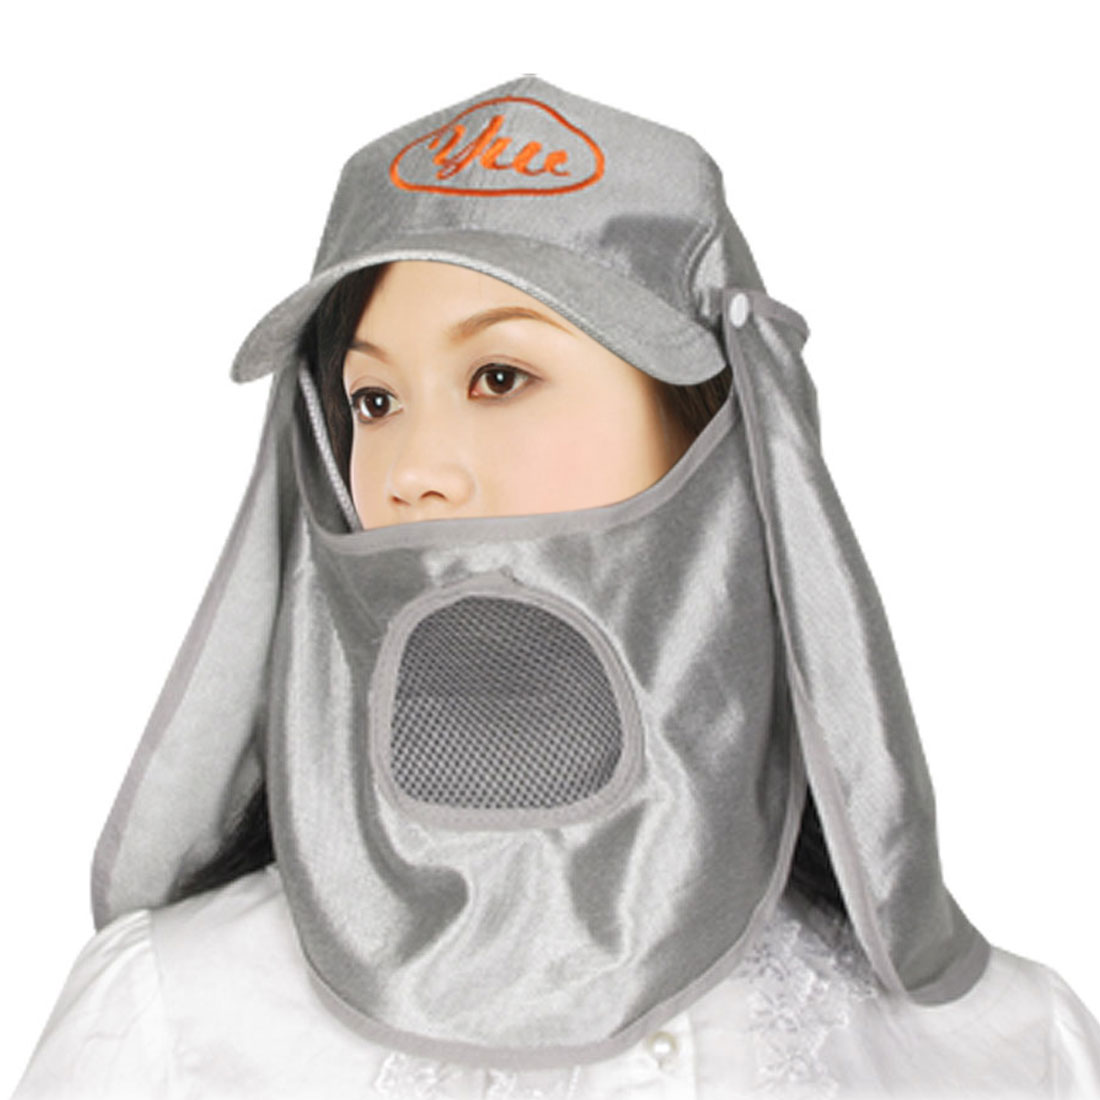 Adjsutable Strap Detachable Neck Cape Fishing Flap Hat Silver Tone